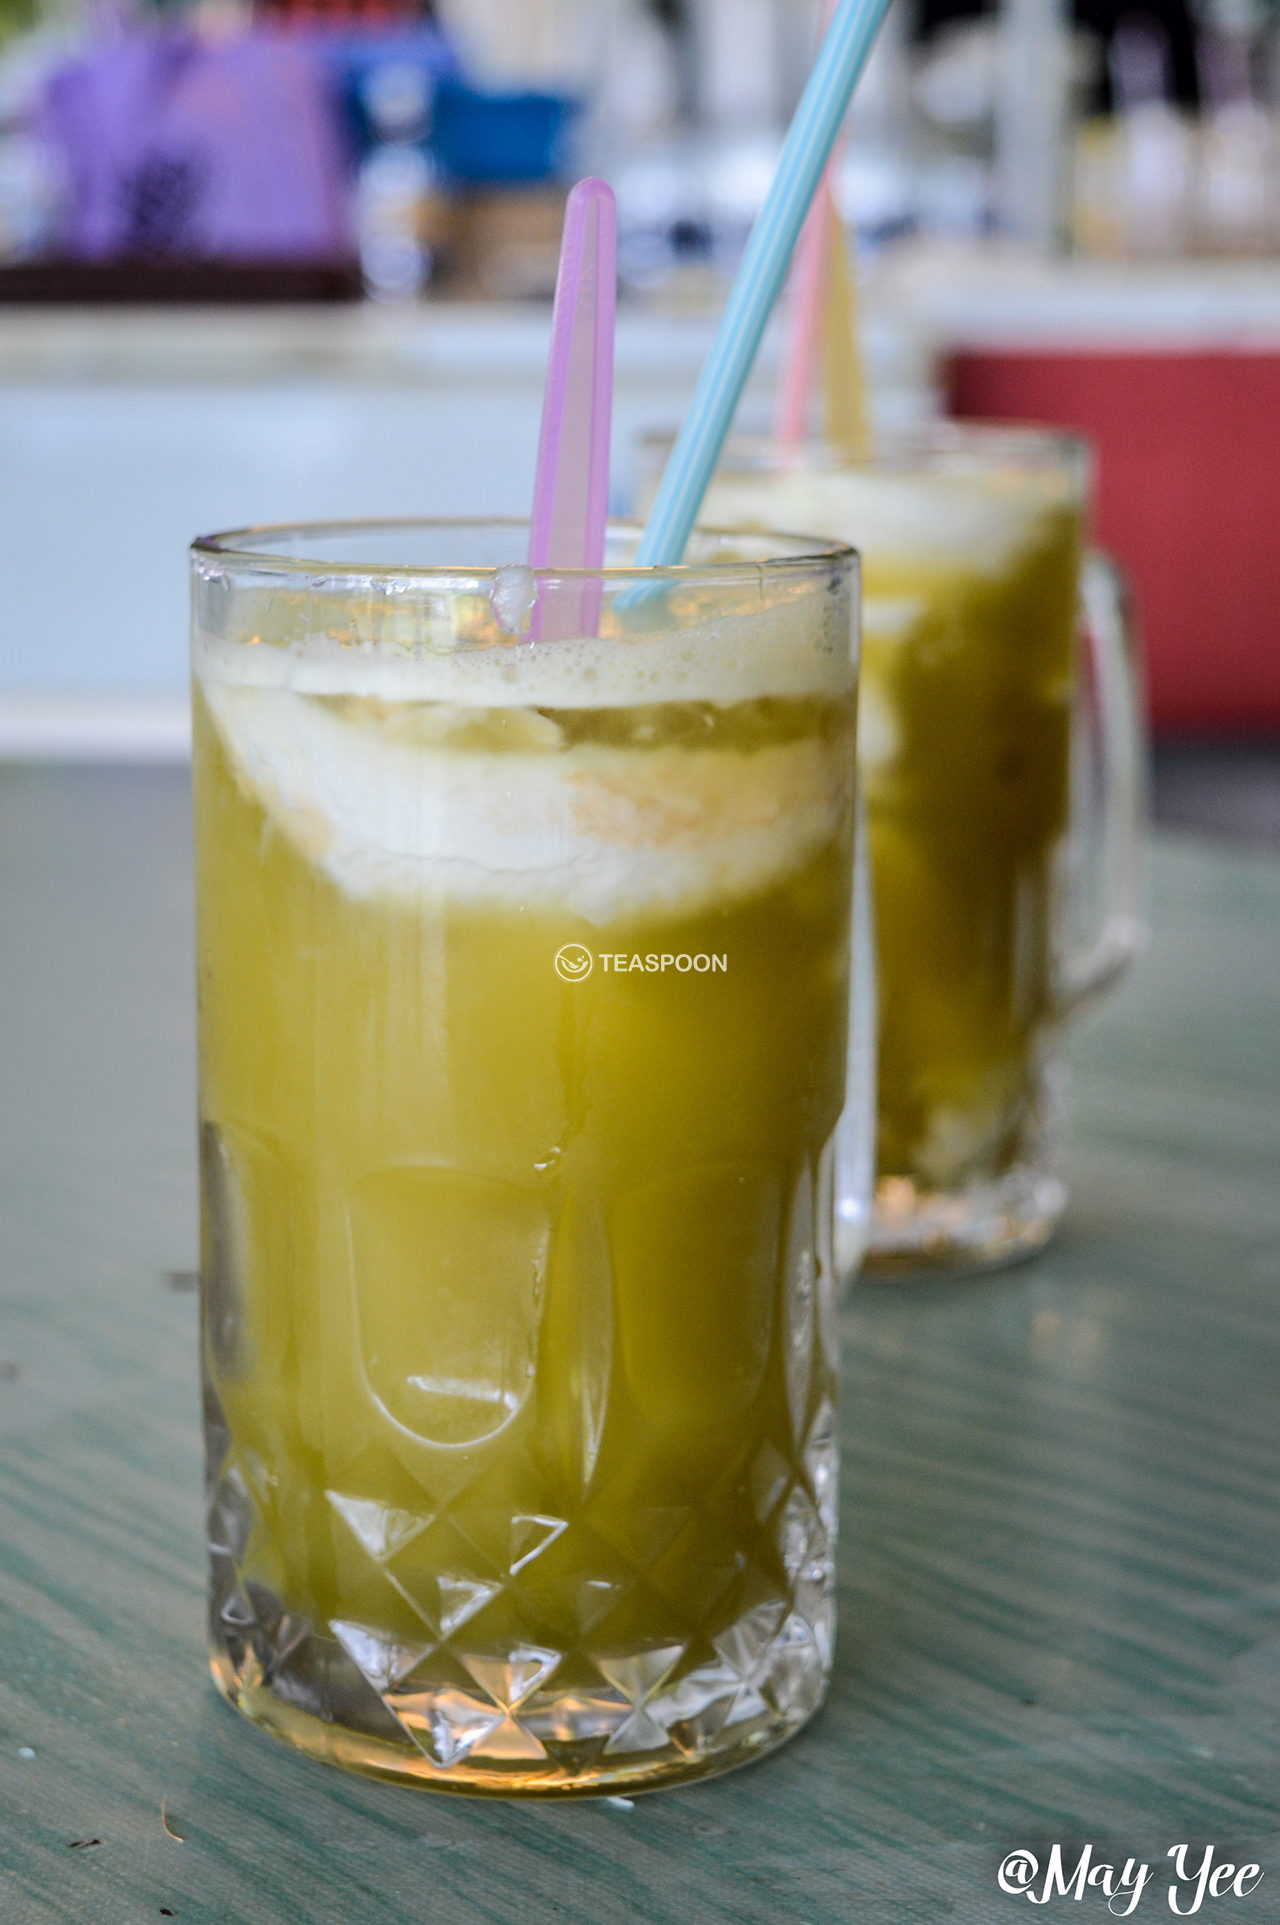 SUGARCANE & COCONUT DRINK